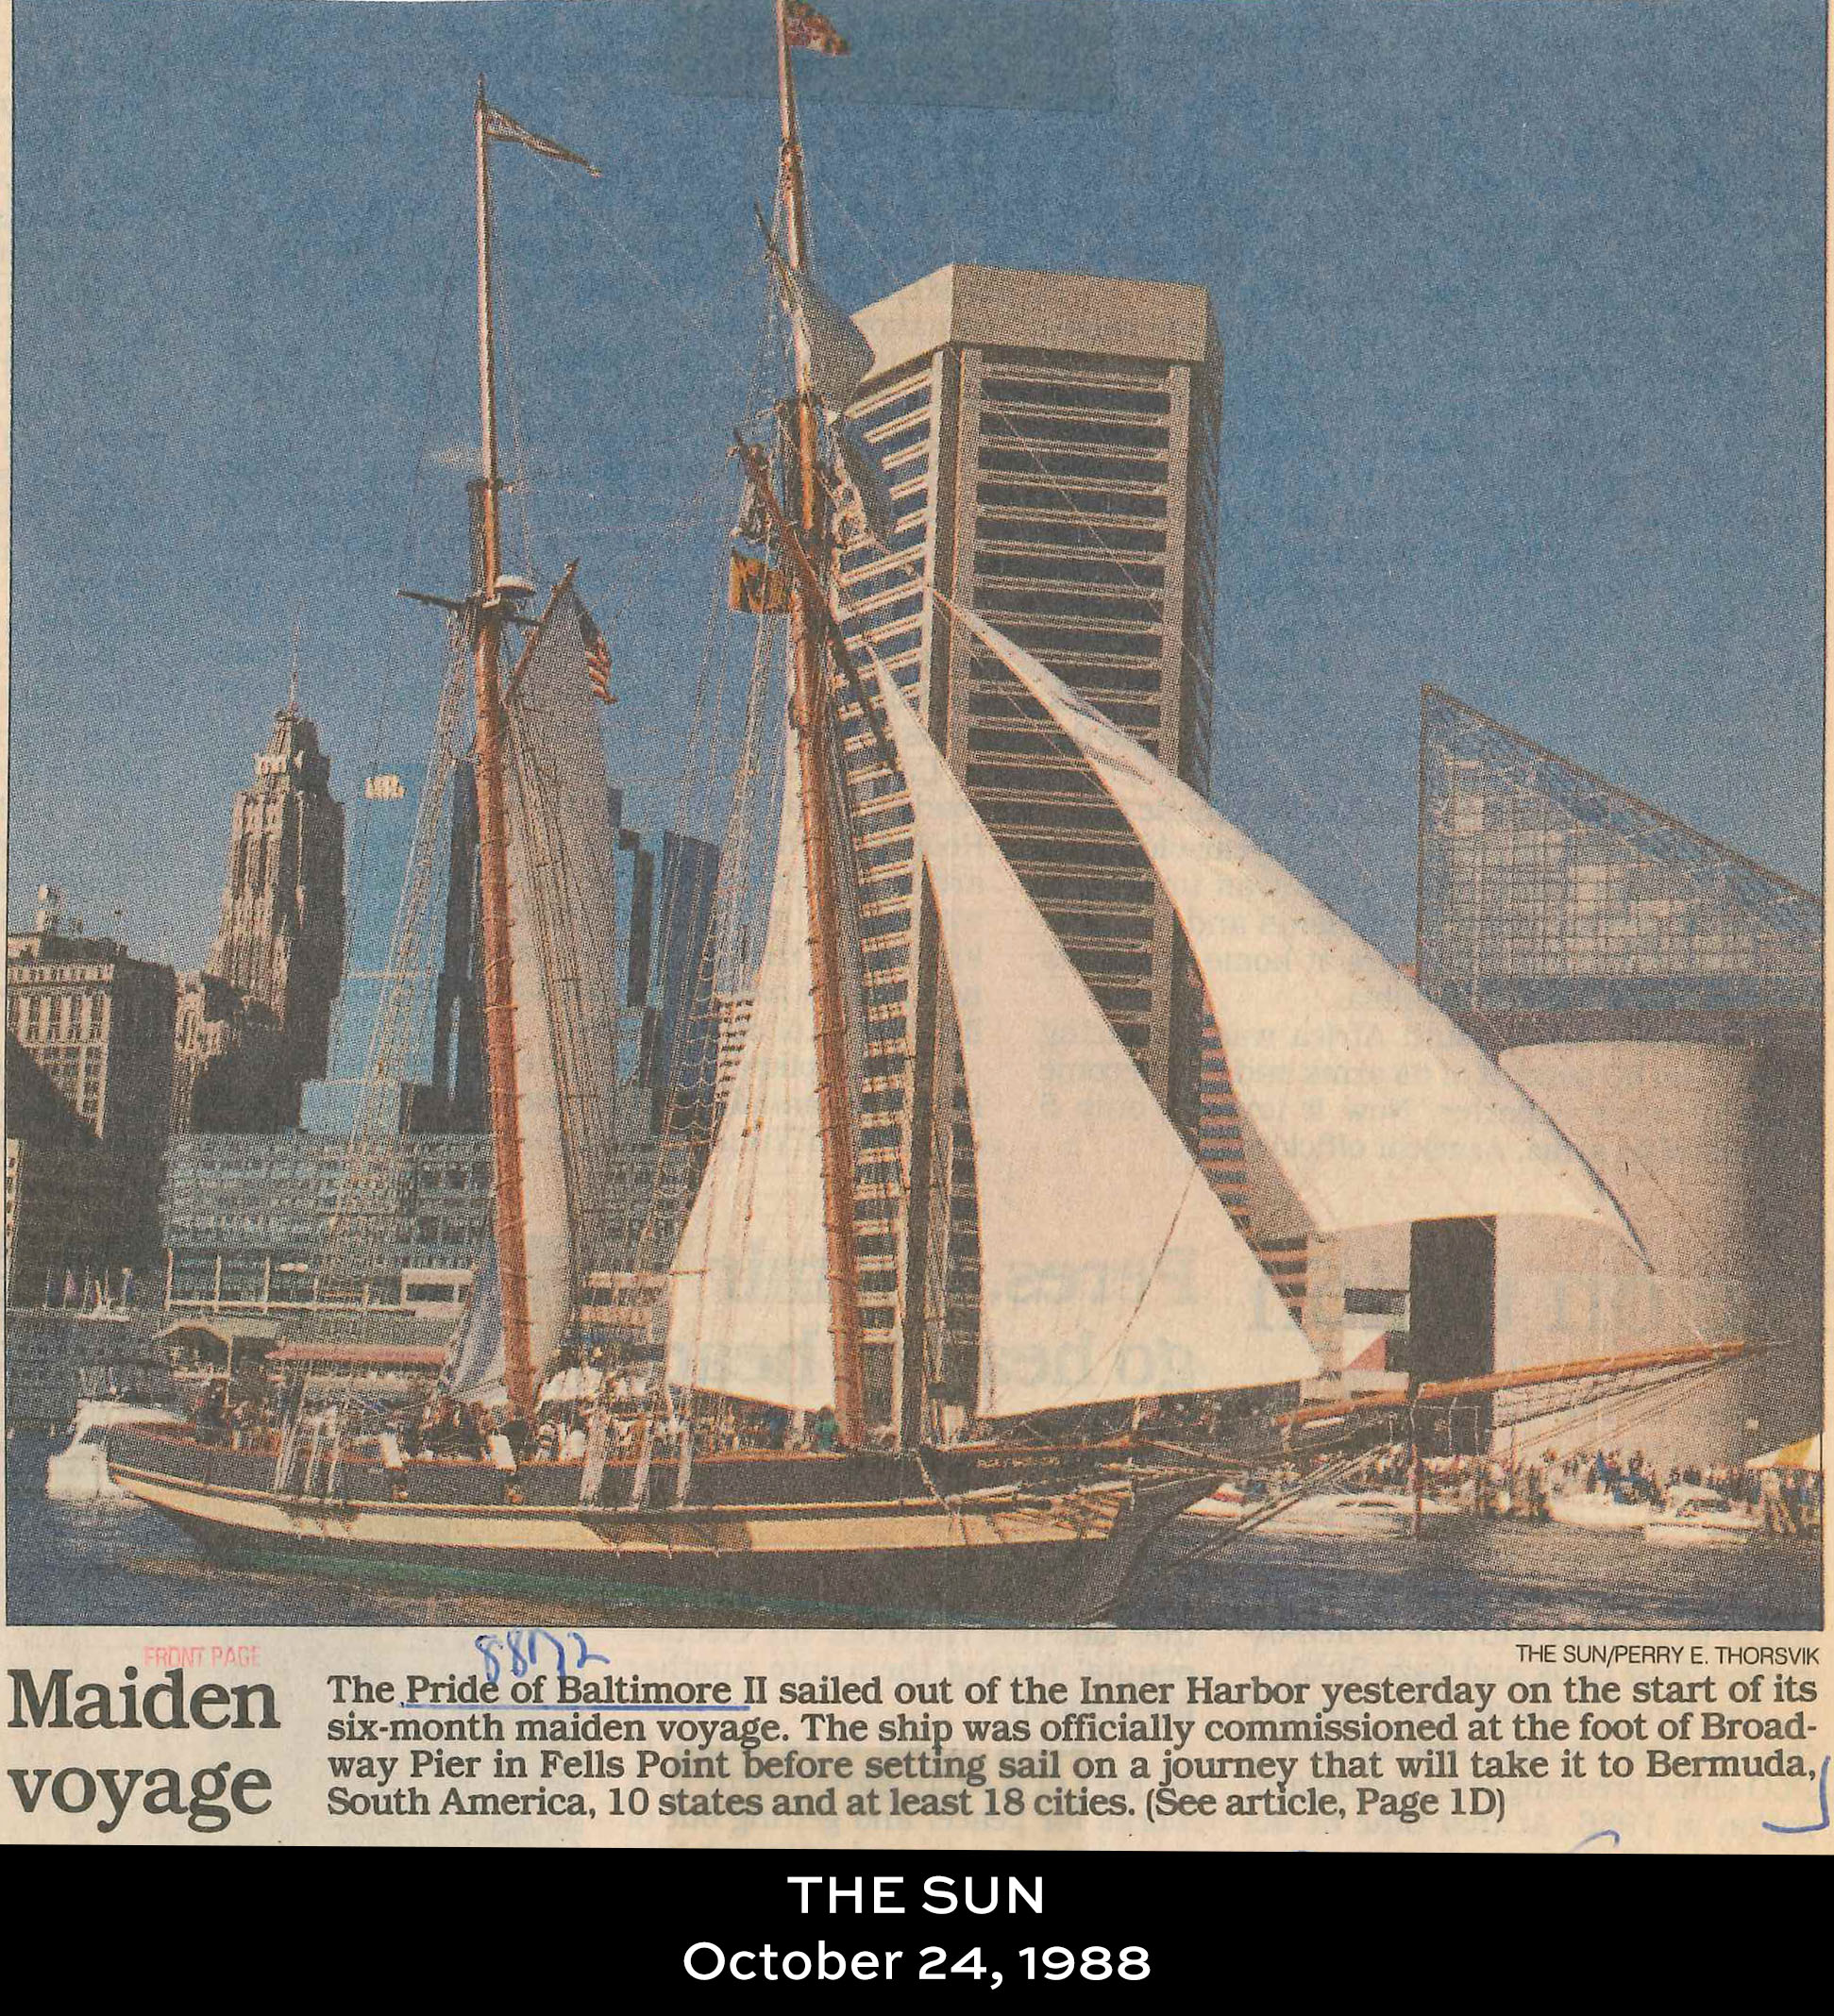 Pride of Baltimore featured in the Baltimore Sun on October 24, 1988